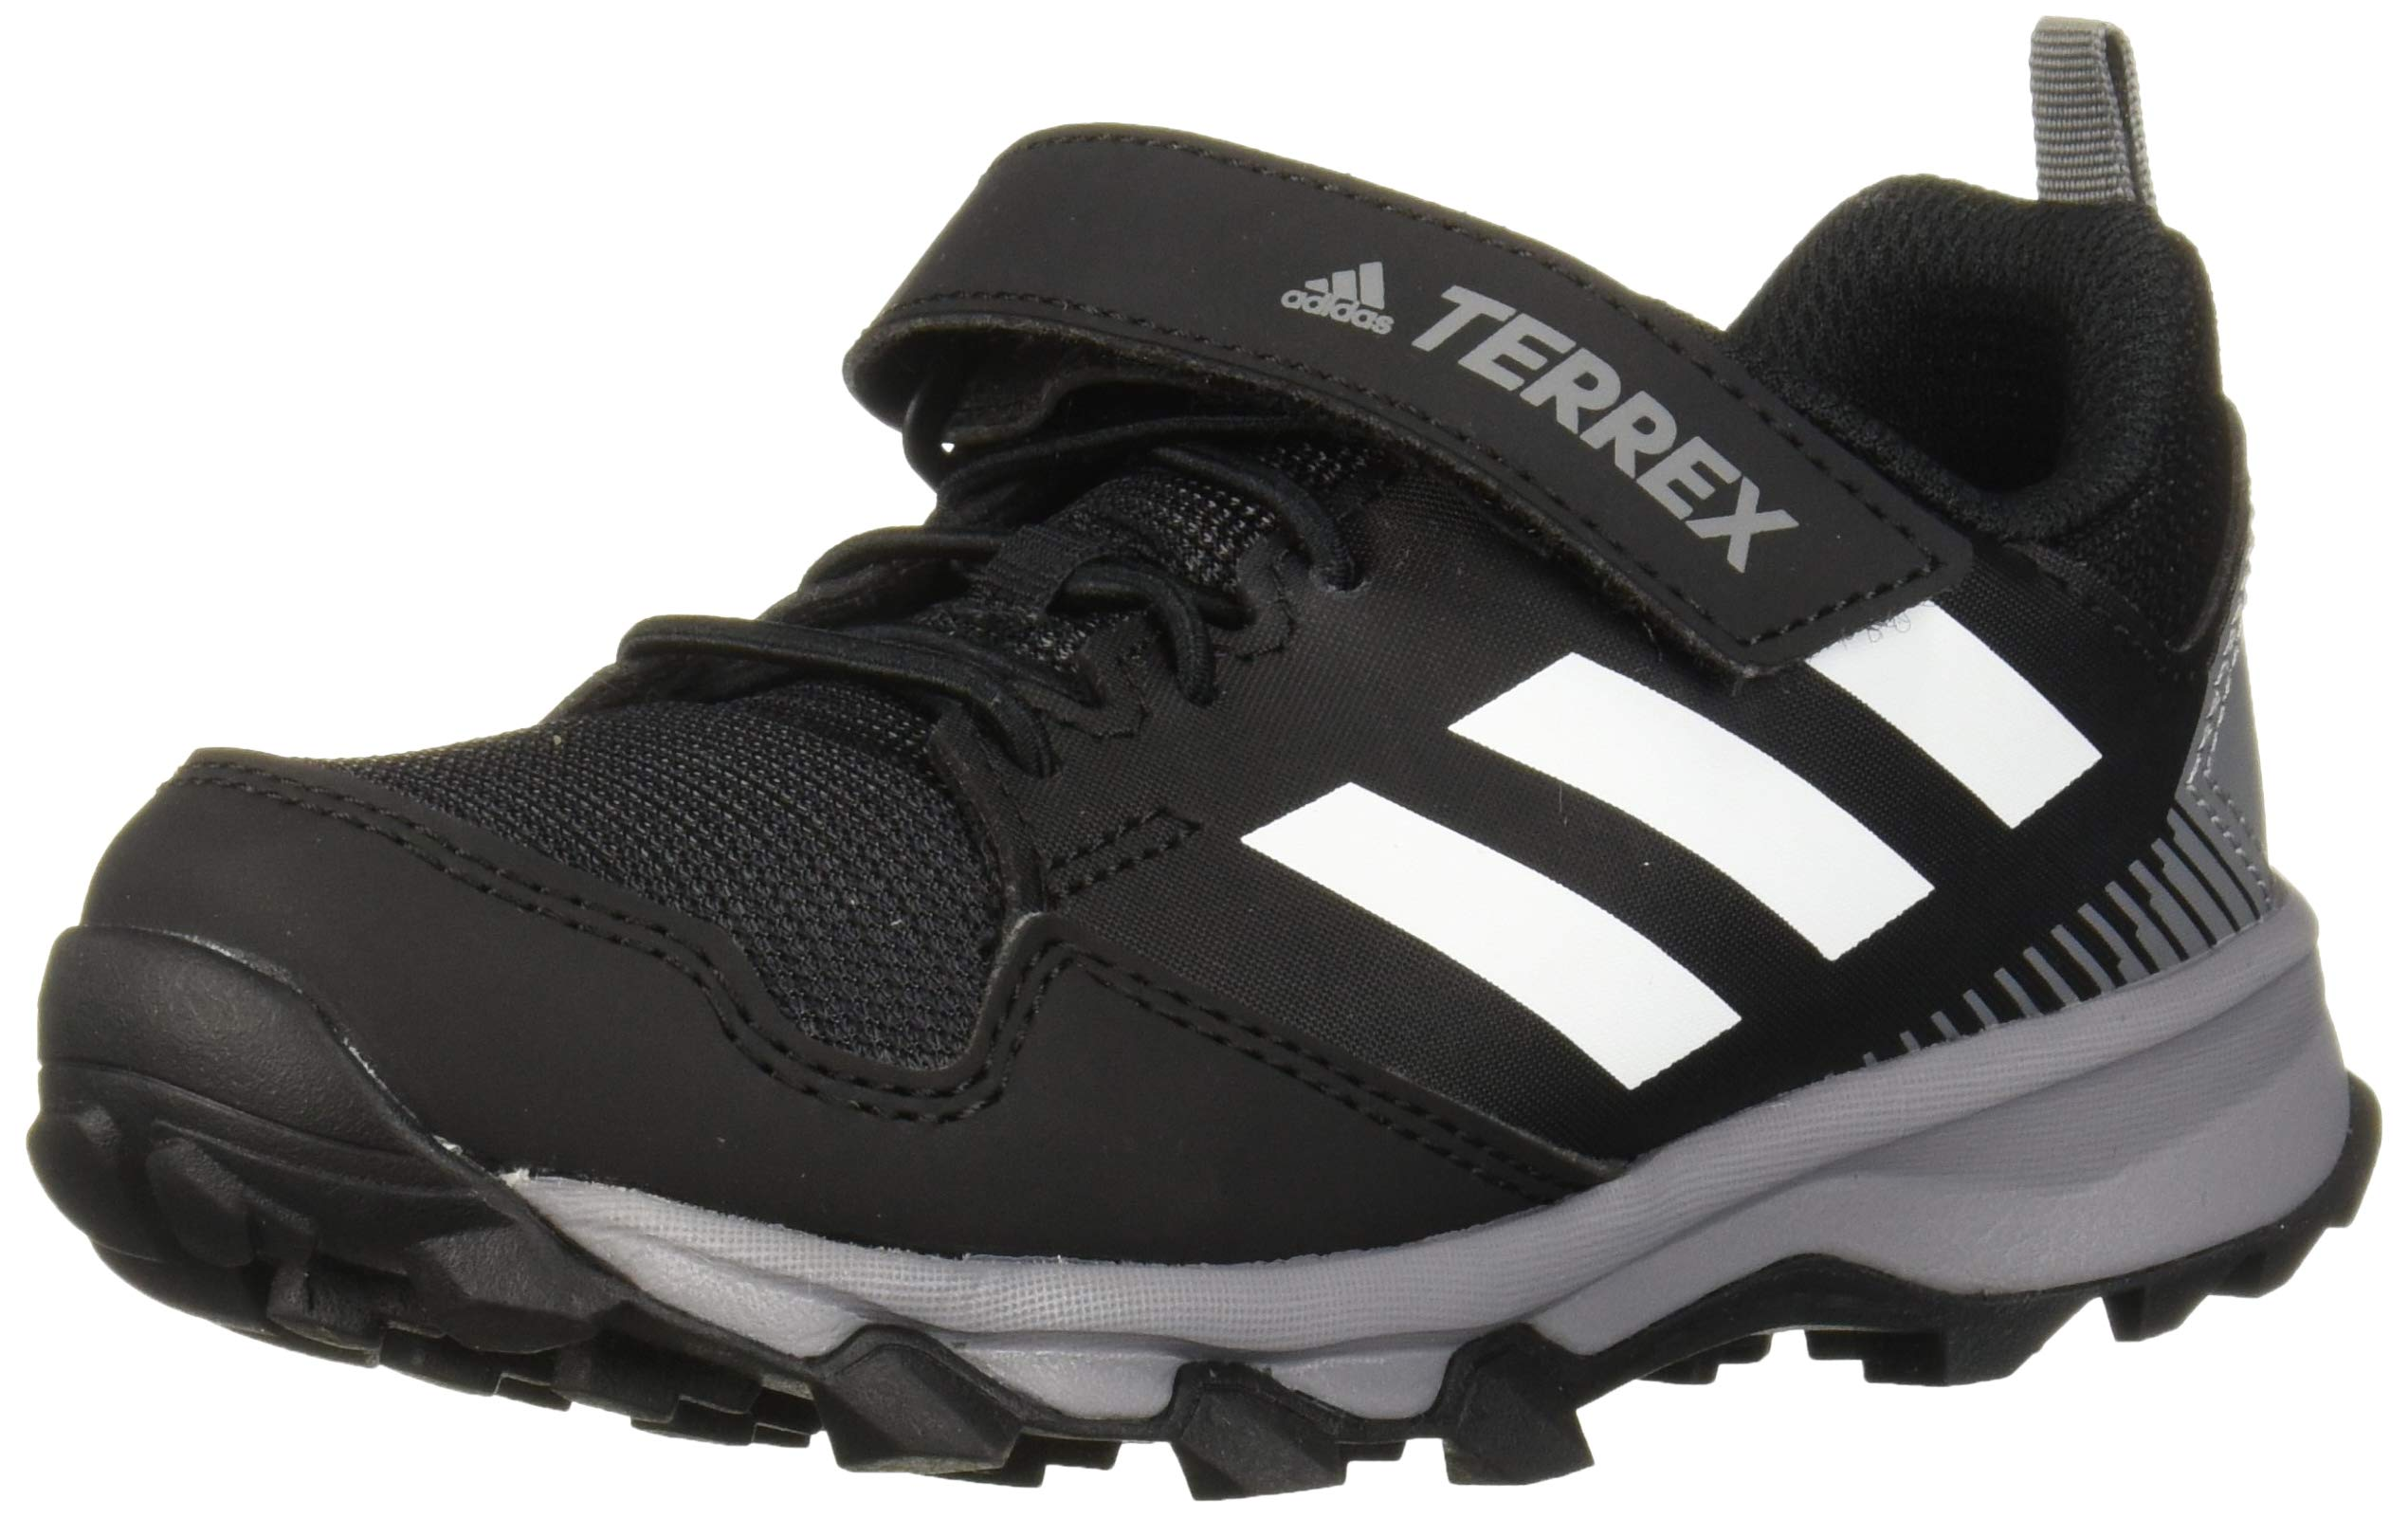 adidas outdoor Terrex Tracerocker CF Trail Running Shoe, Carbon/White/Black 13K Child US Little Kid